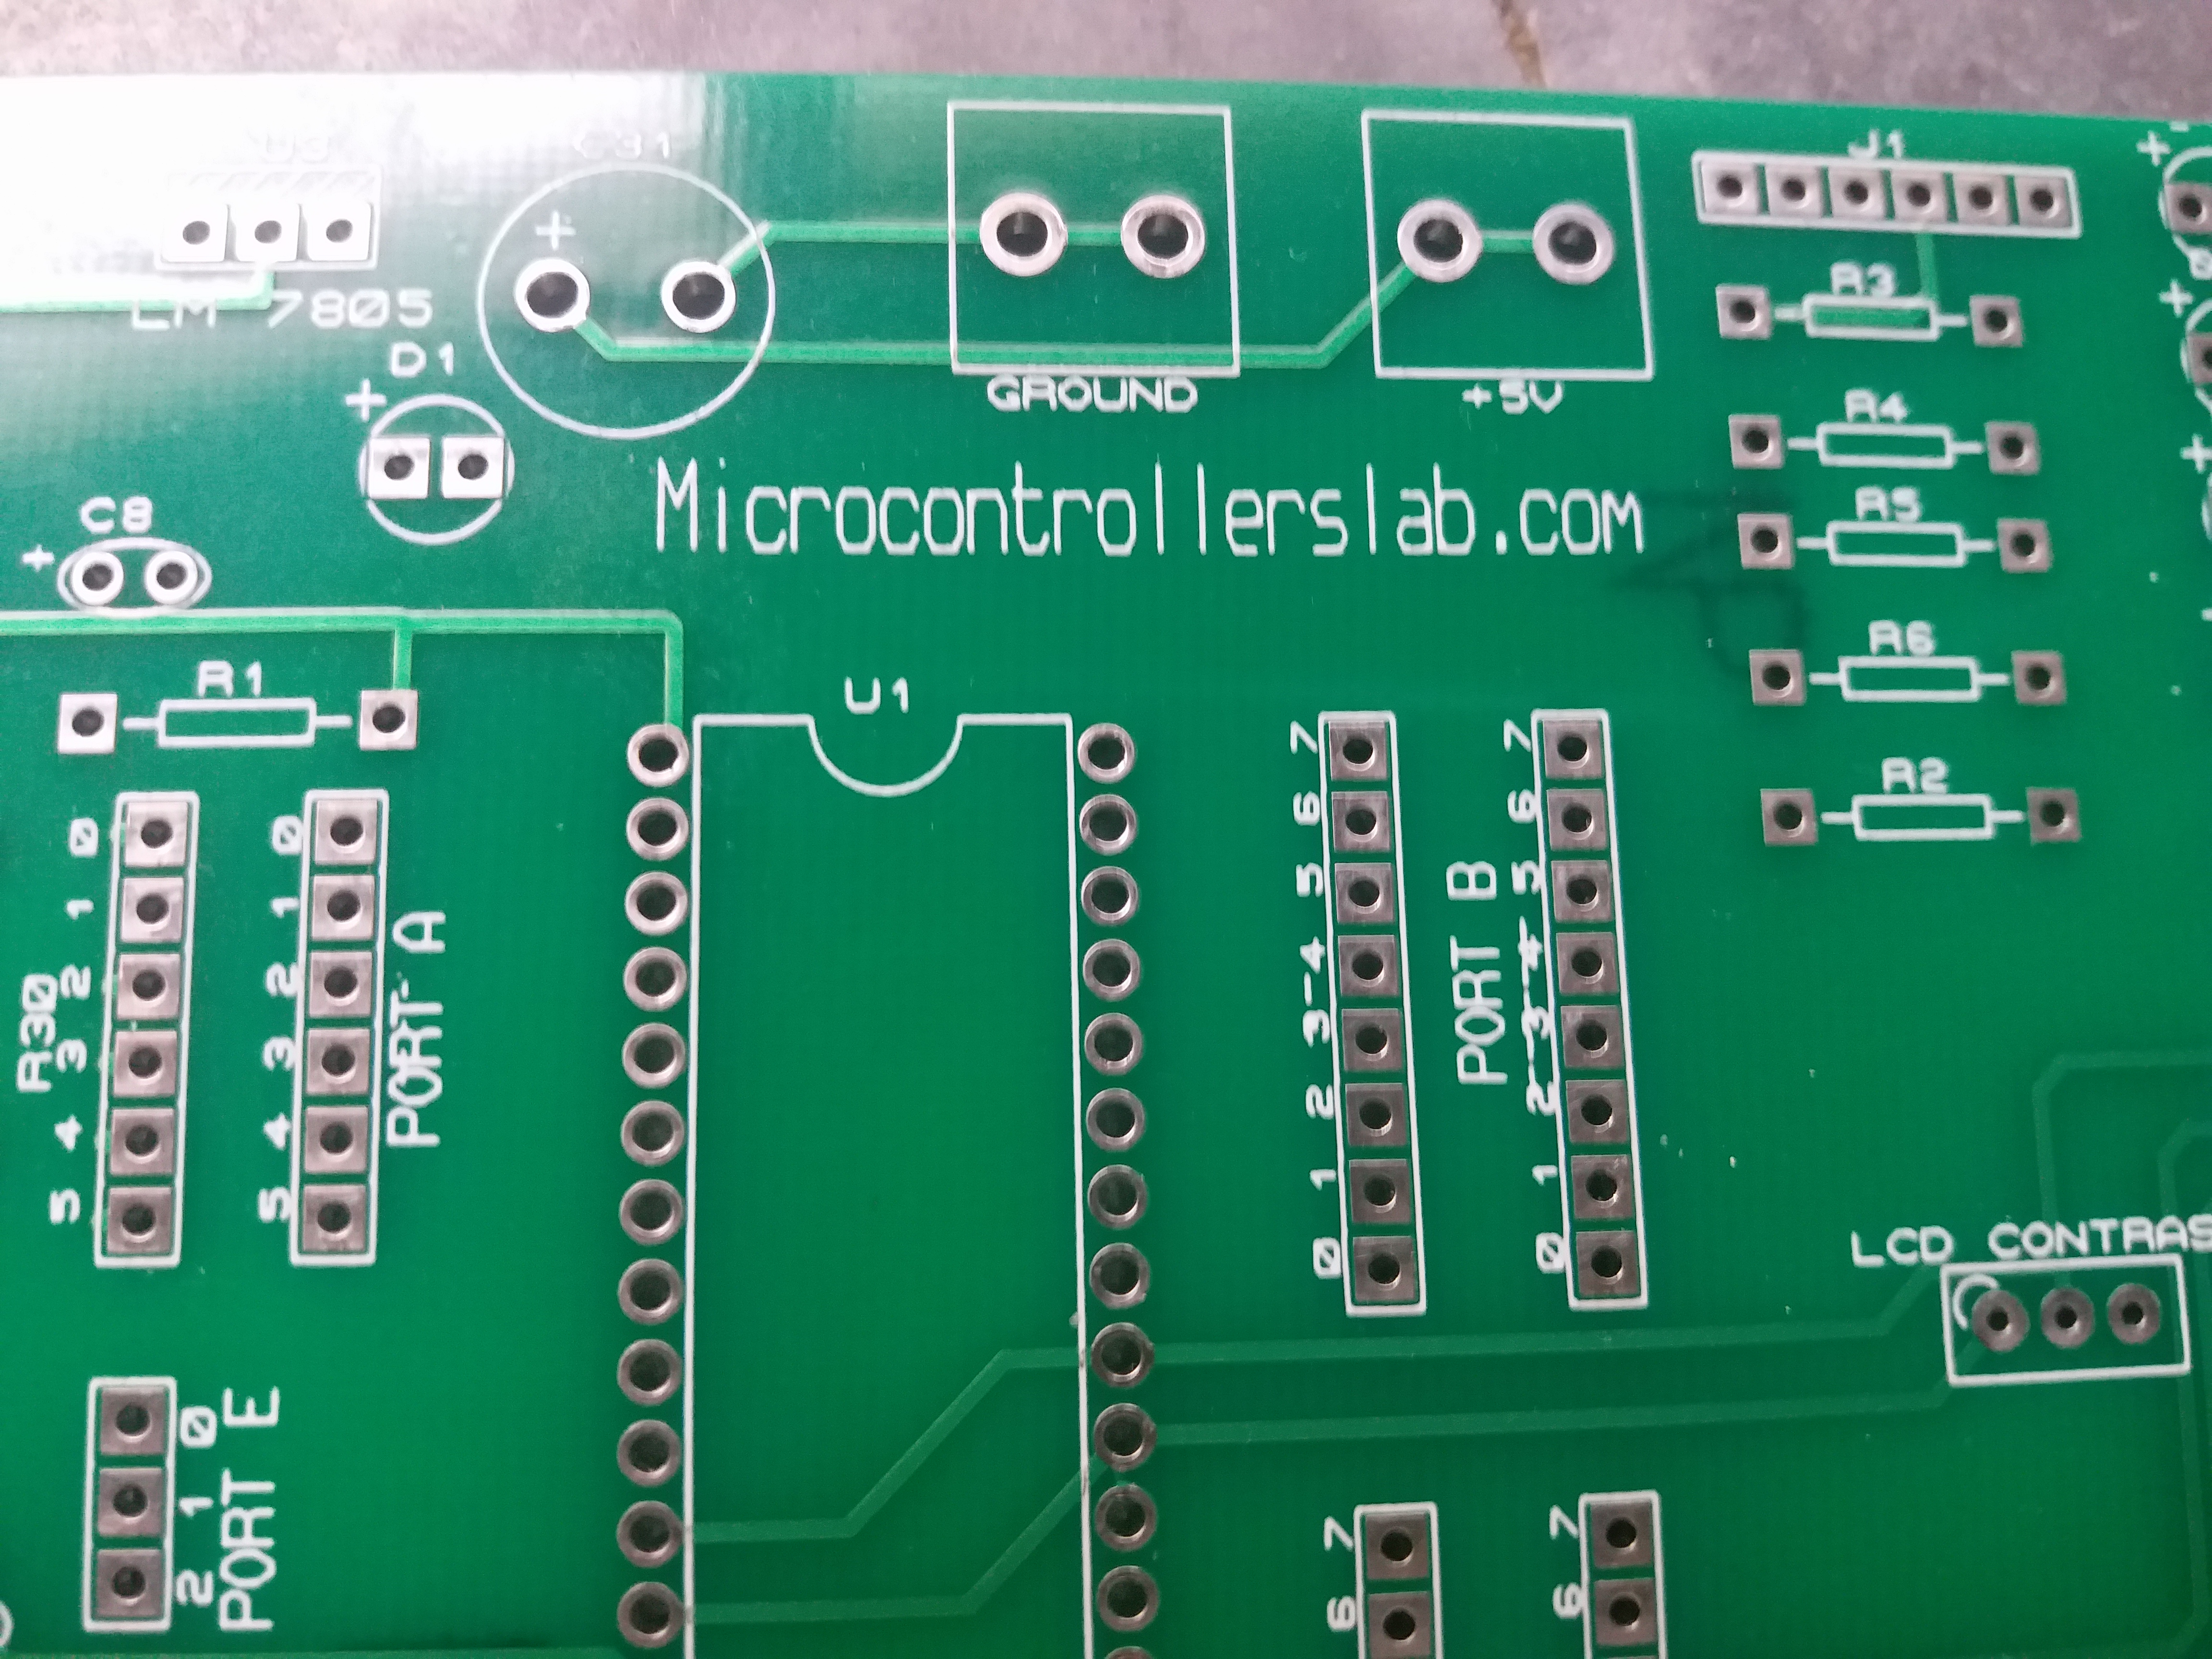 Cheap and Quick-turn PCB Manufacturing - JLCPCB | Microcontrollers Lab